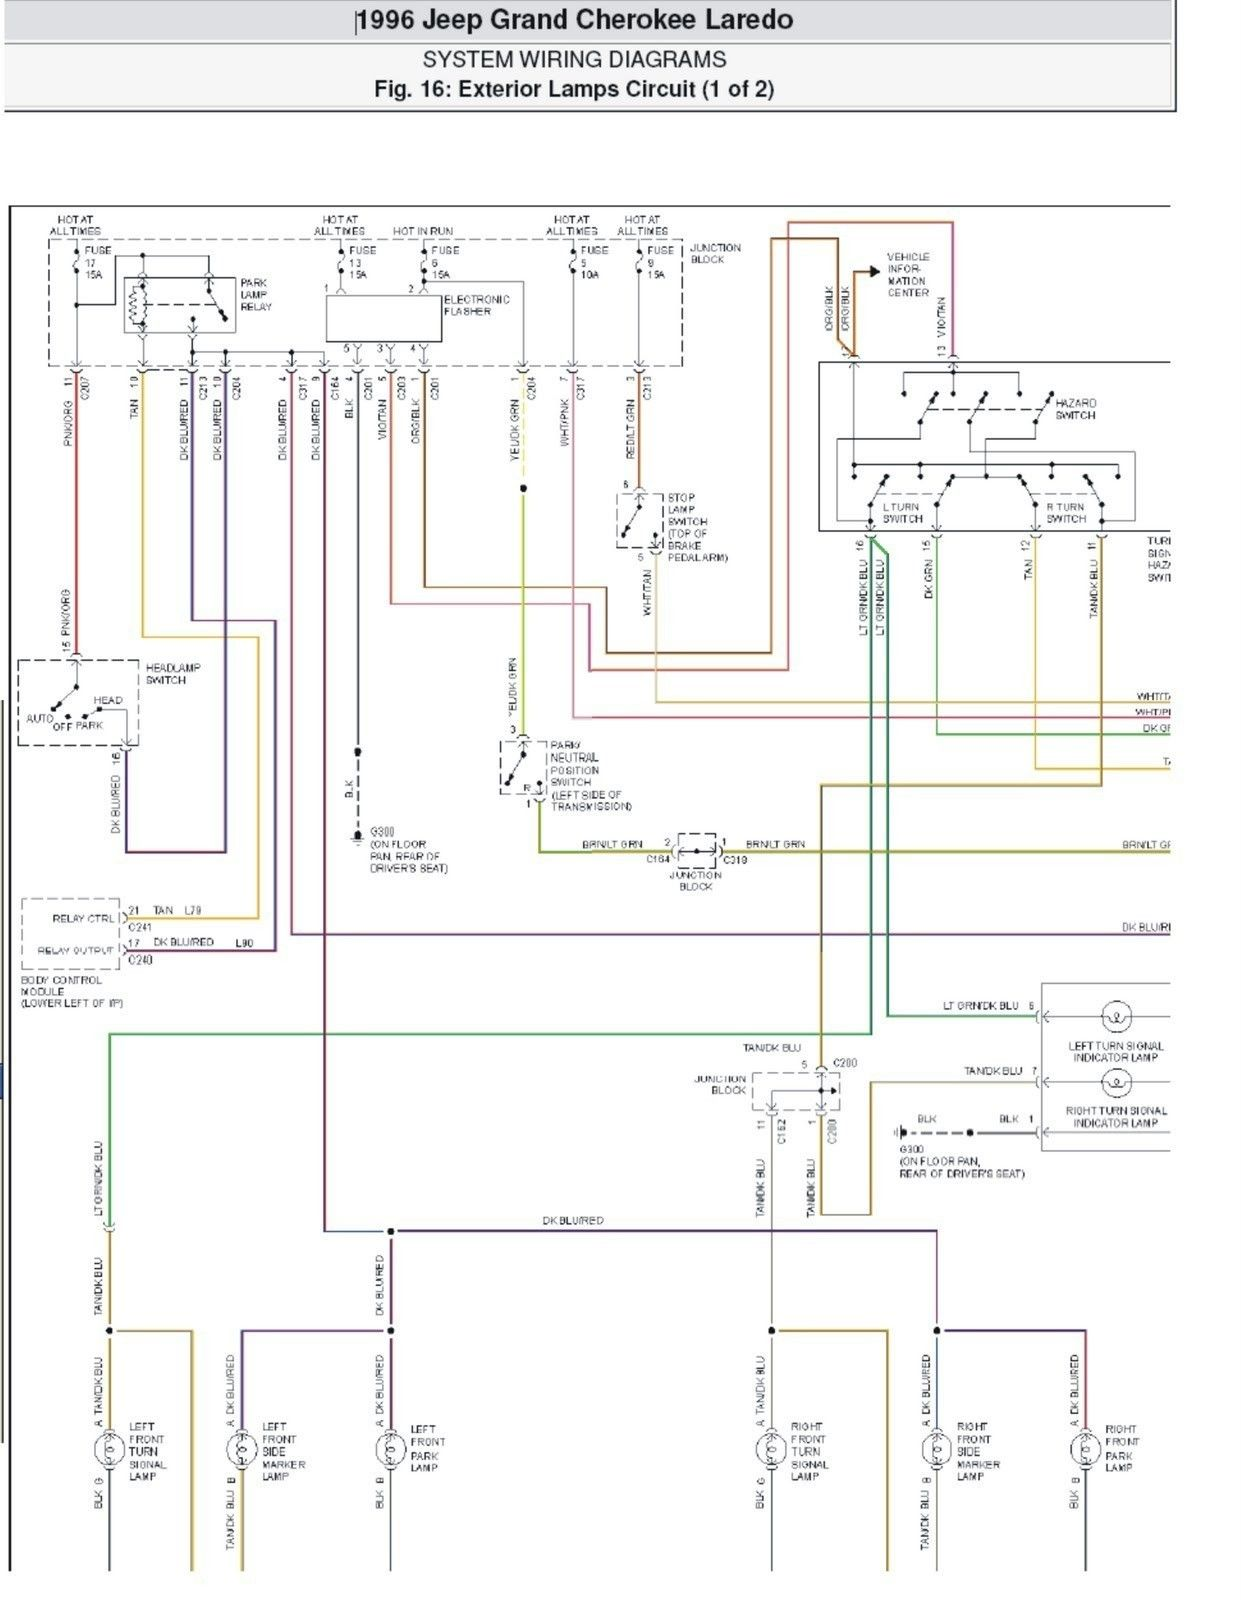 Best Of Jeep Xj Wiring Diagram In 2020 Jeep Grand Cherokee Jeep Grand Cherokee Laredo Jeep